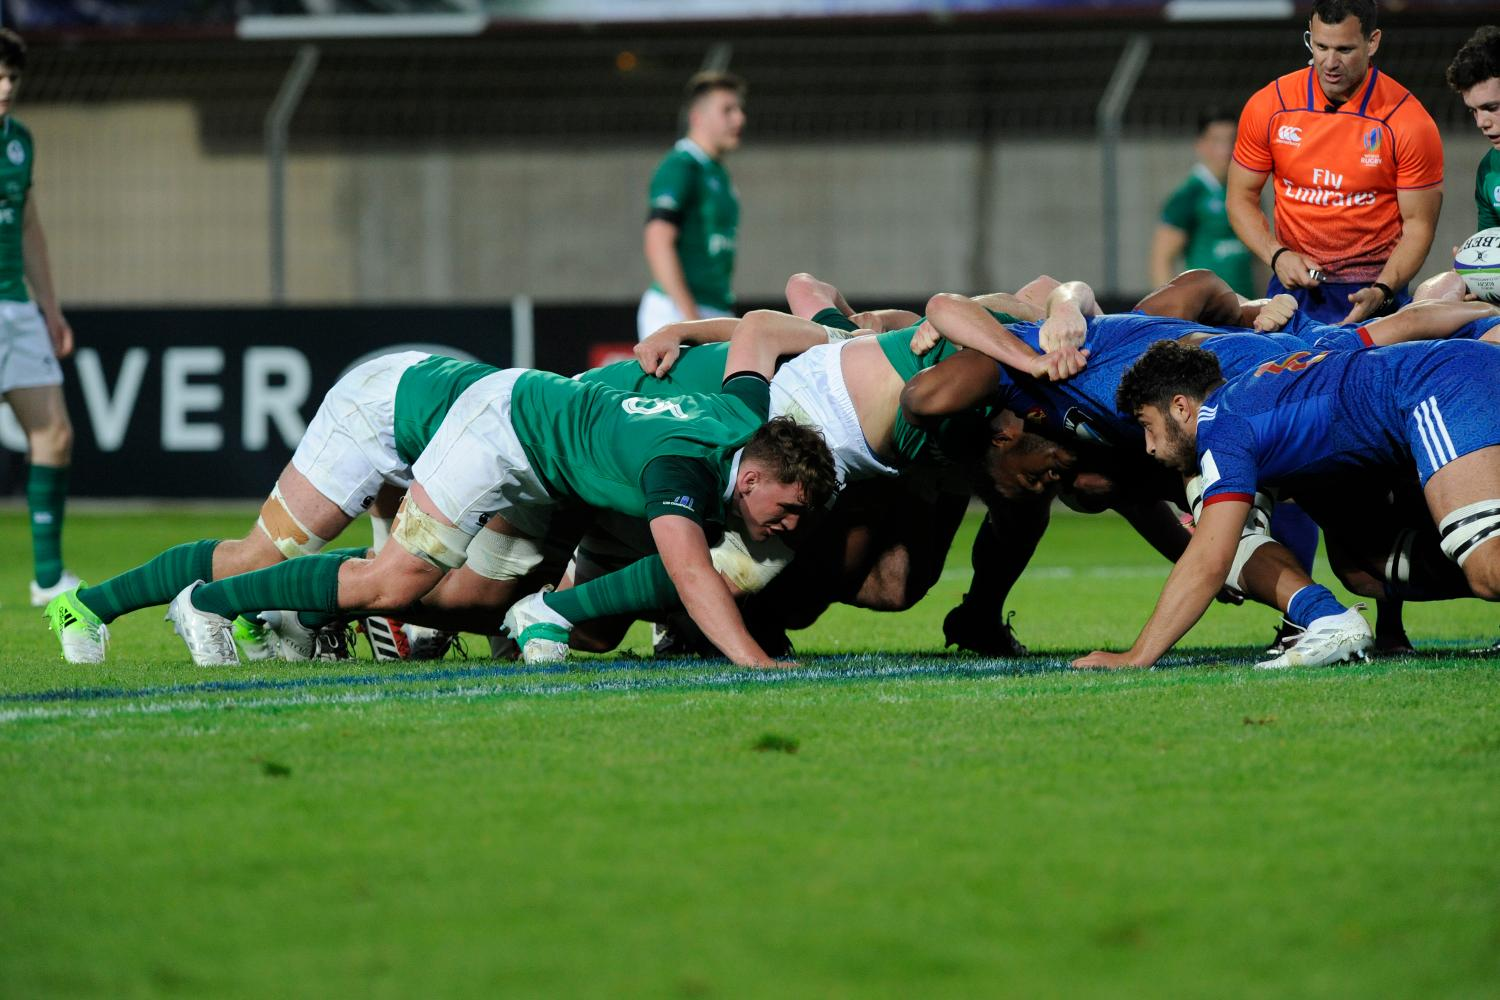 World Rugby U20 Championship 2018: France v Ireland